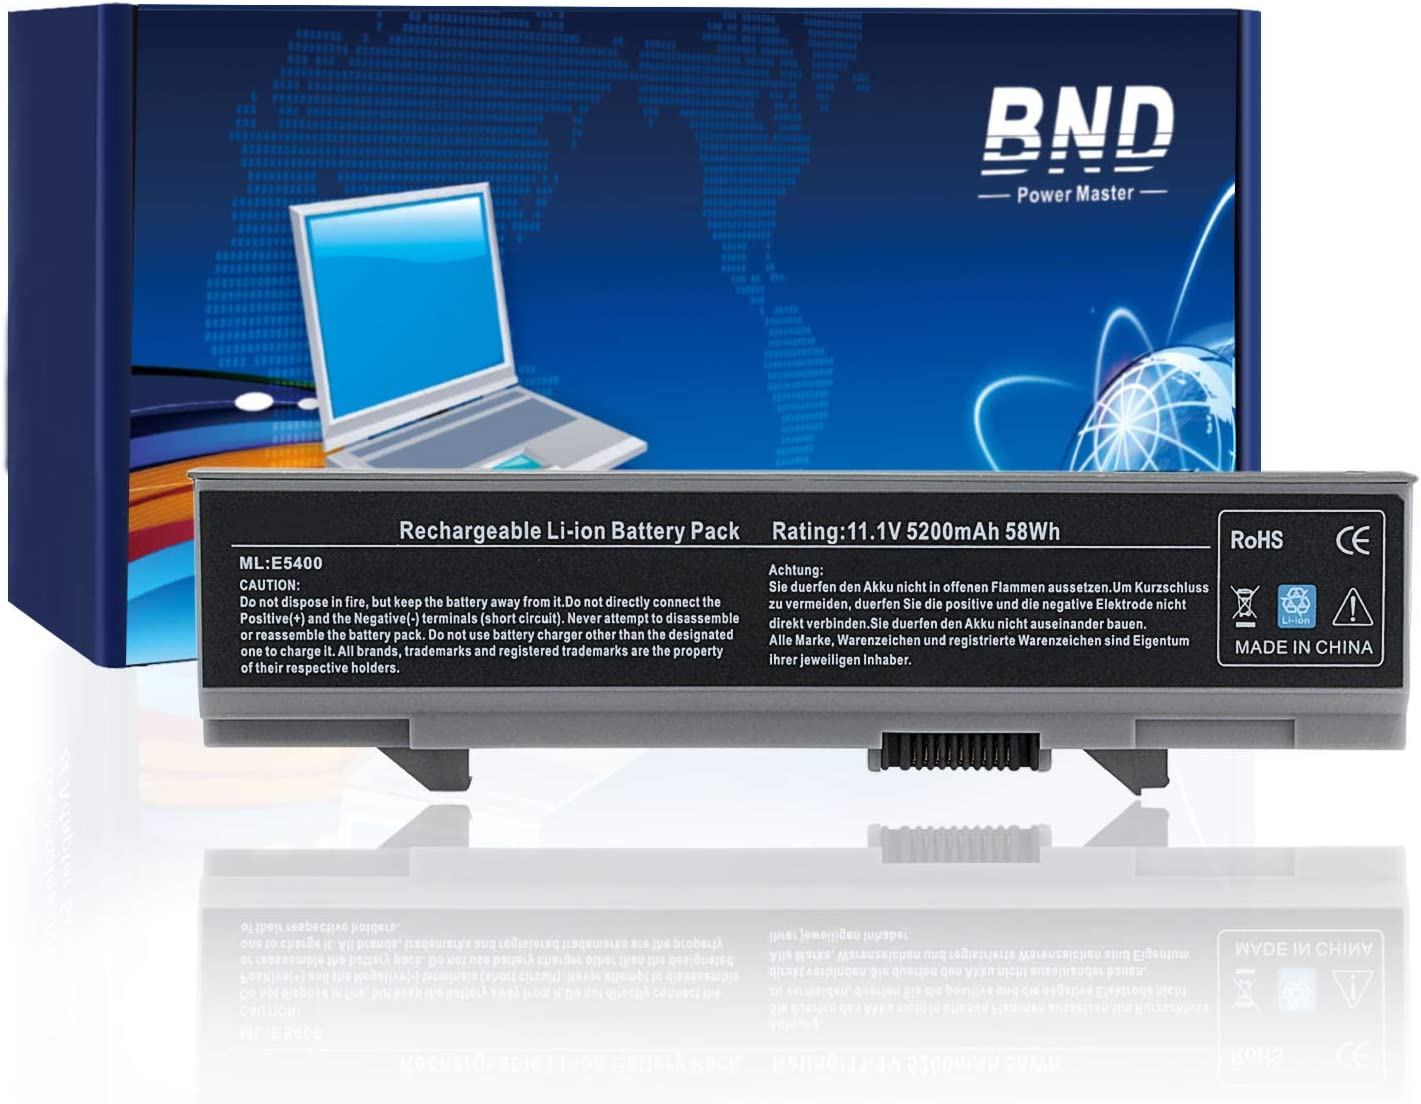 BND KM742 Laptop Battery Replacement for Dell Latitude E5400 E5410 E5500 E5510 Series, fits P/N WU841 T749D KM668 KM769 KM771 PW640 [6-Cell Li-ion 5200mAh/58Wh]